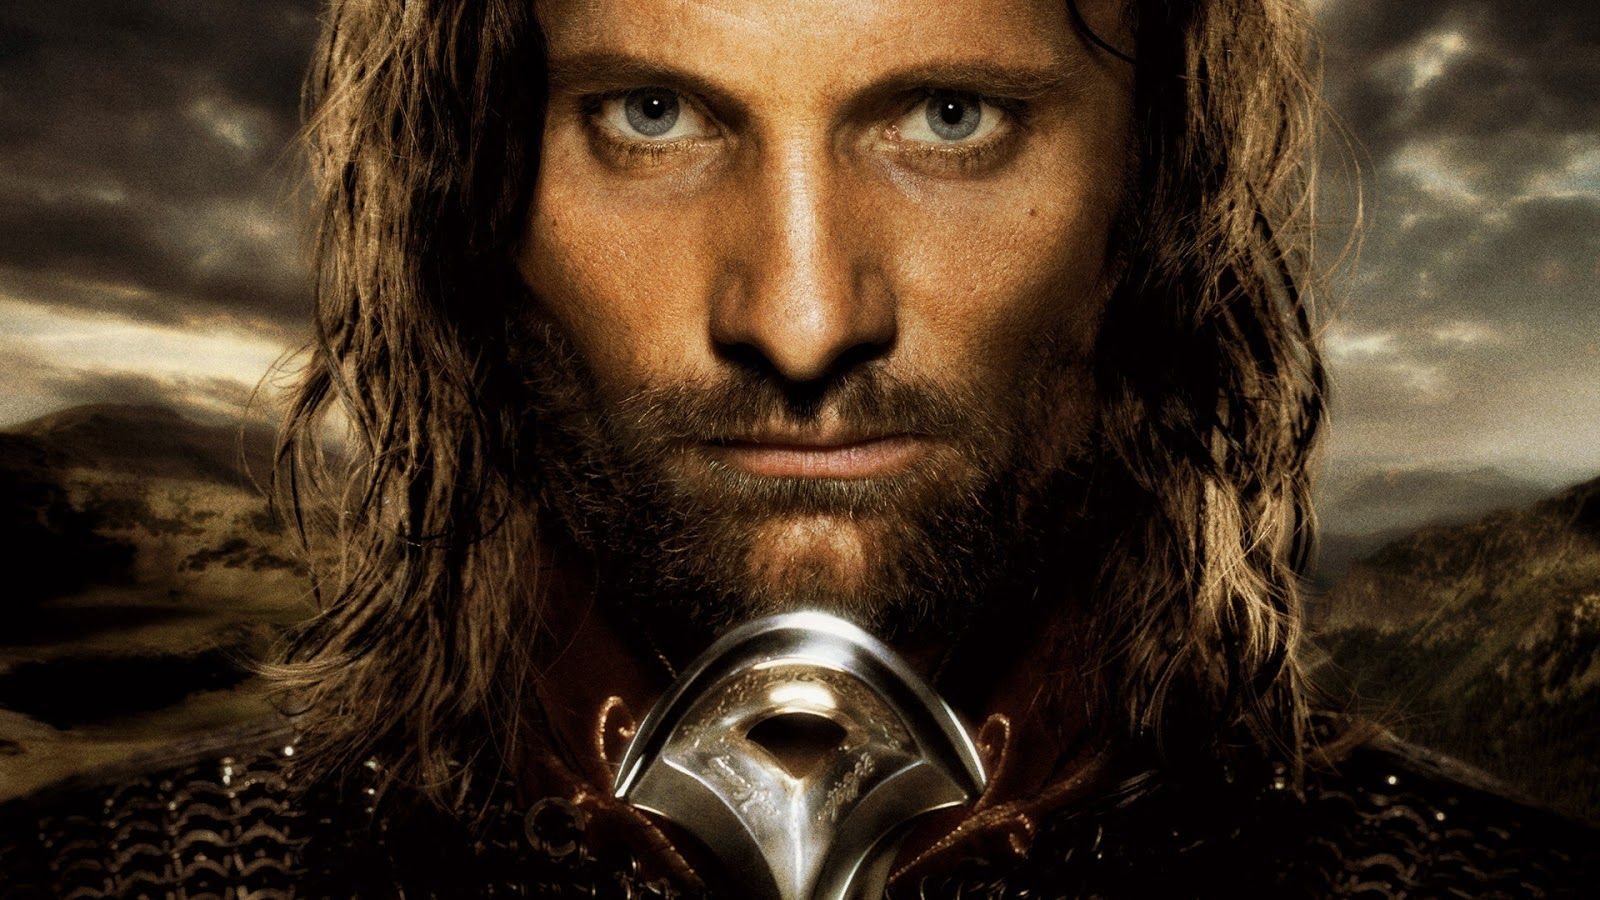 Pin By Trevor Mcintosh On Nerd Power Lord Of The Rings The Best Films Fellowship Of The Ring